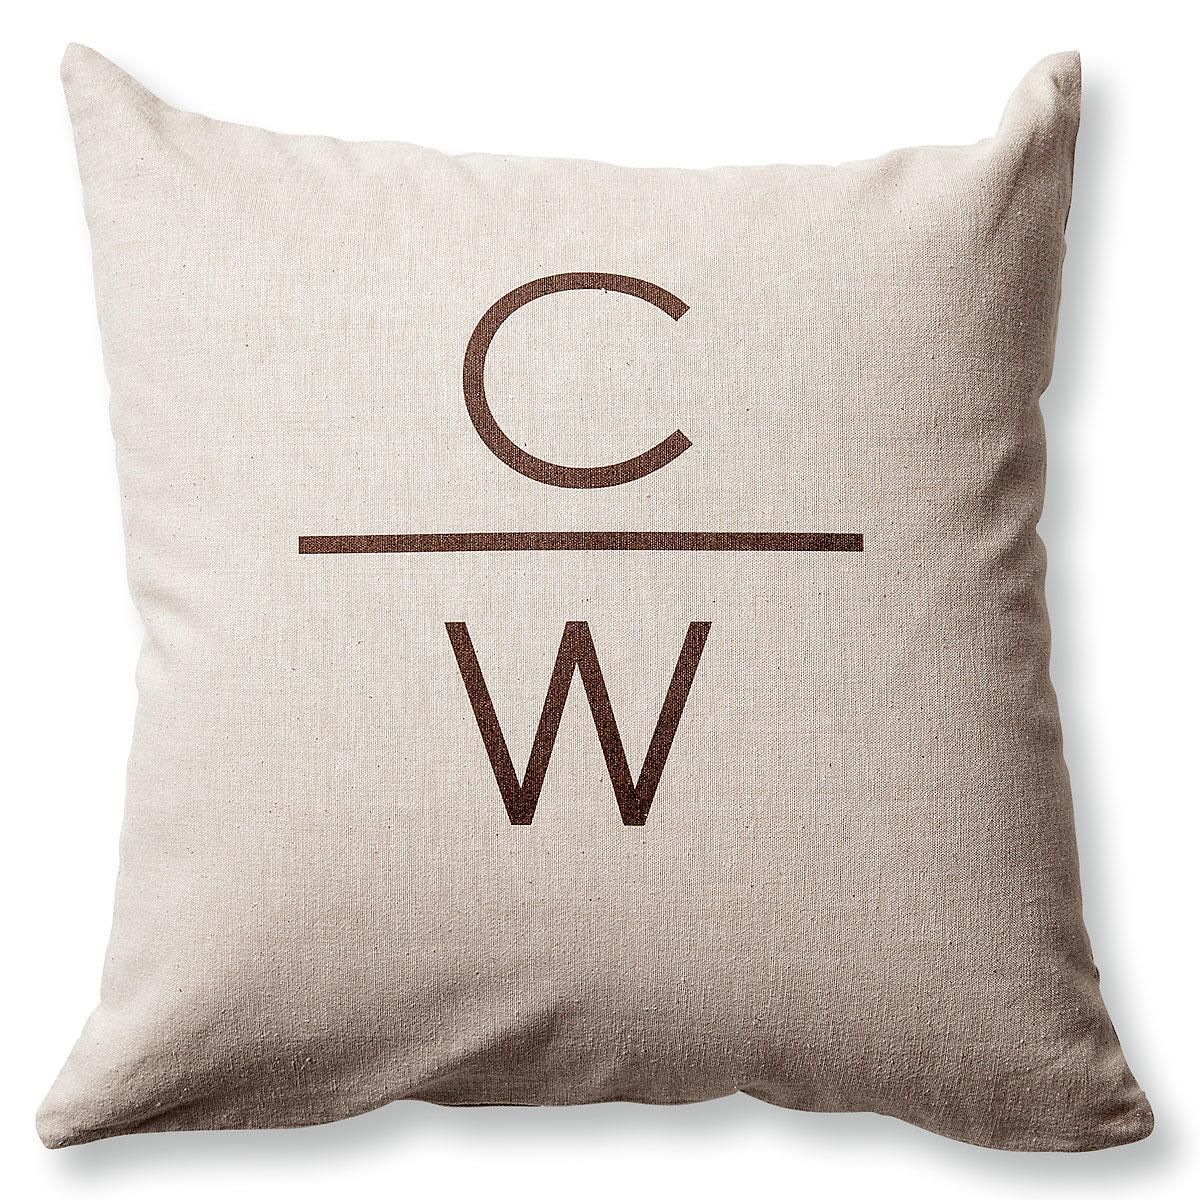 2 Initials with Line Personalized Pillow by Designer Jillian Yee-Pham